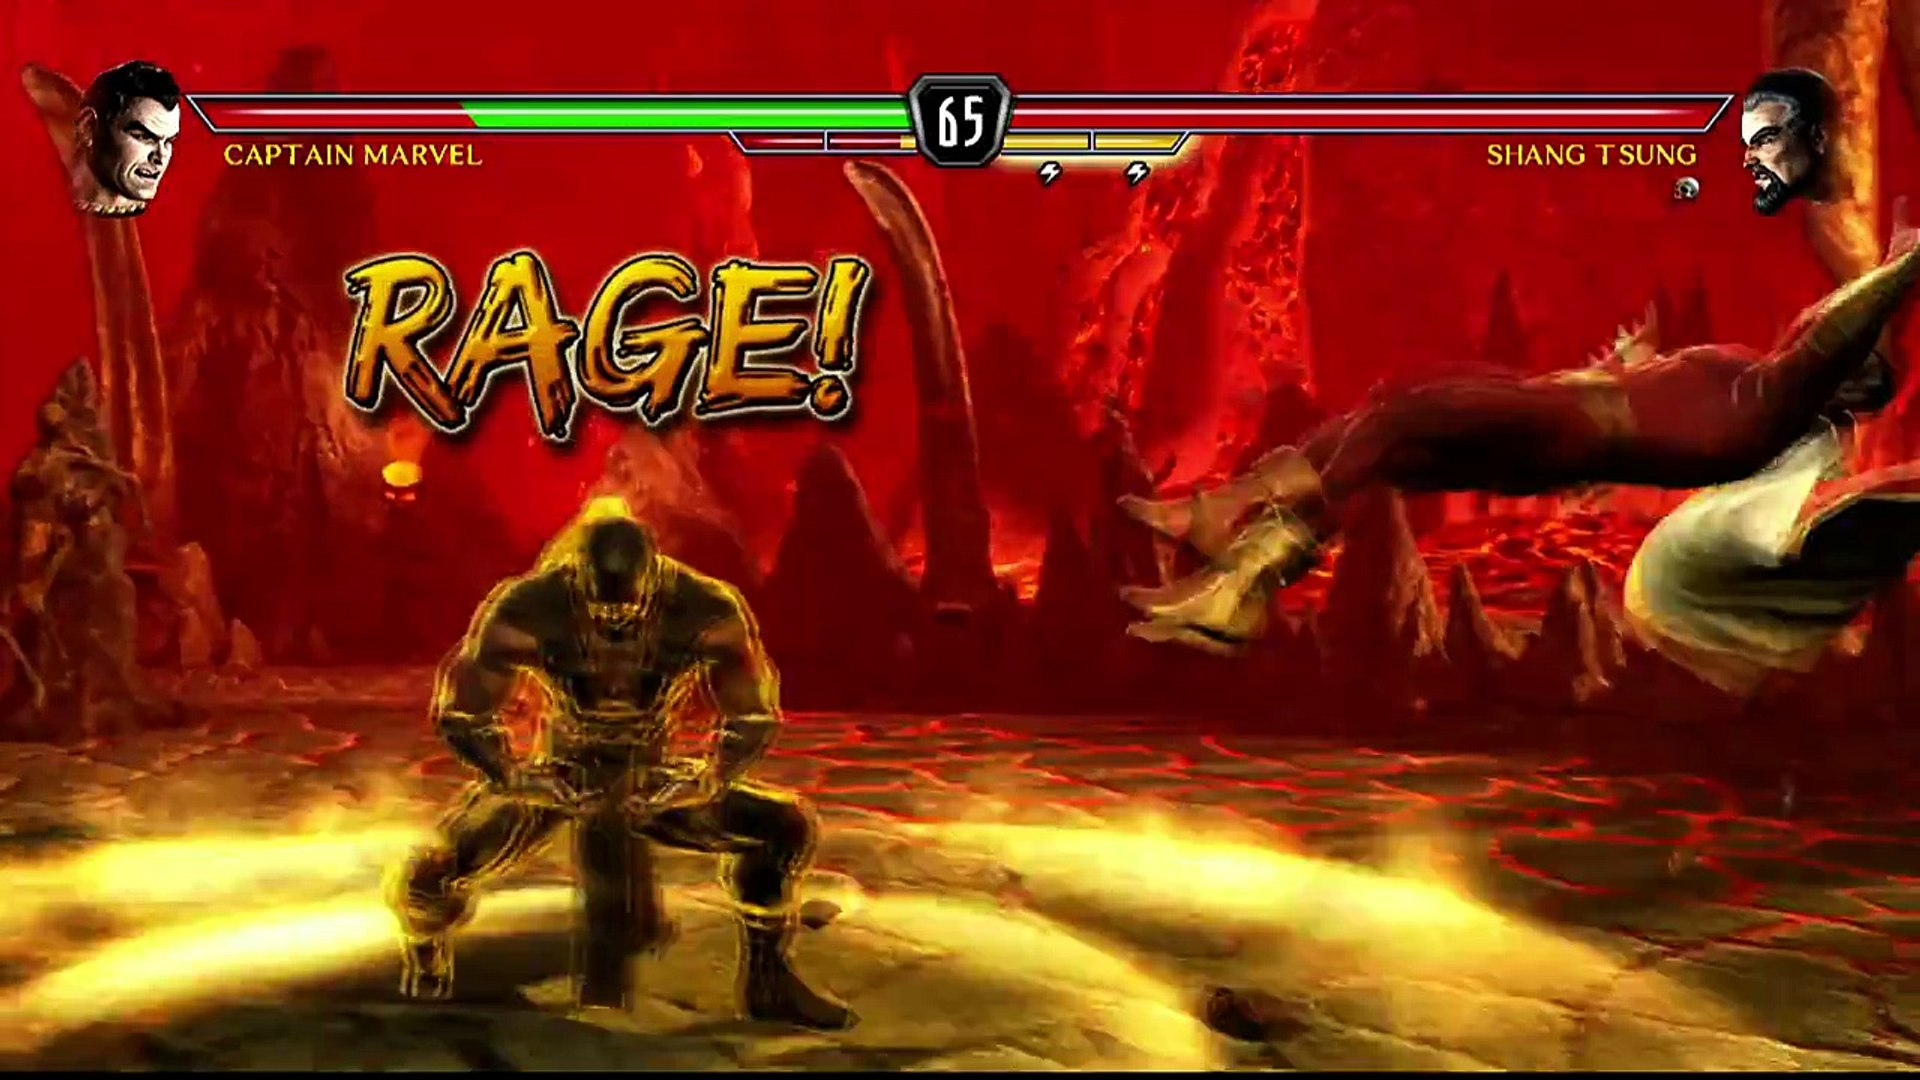 Mortal Kombat VS DC Universe [Xbox 360] - ✪ Captain Marvel Vs Shang Tsung ✪  | Full HD – Видео Dailymotion